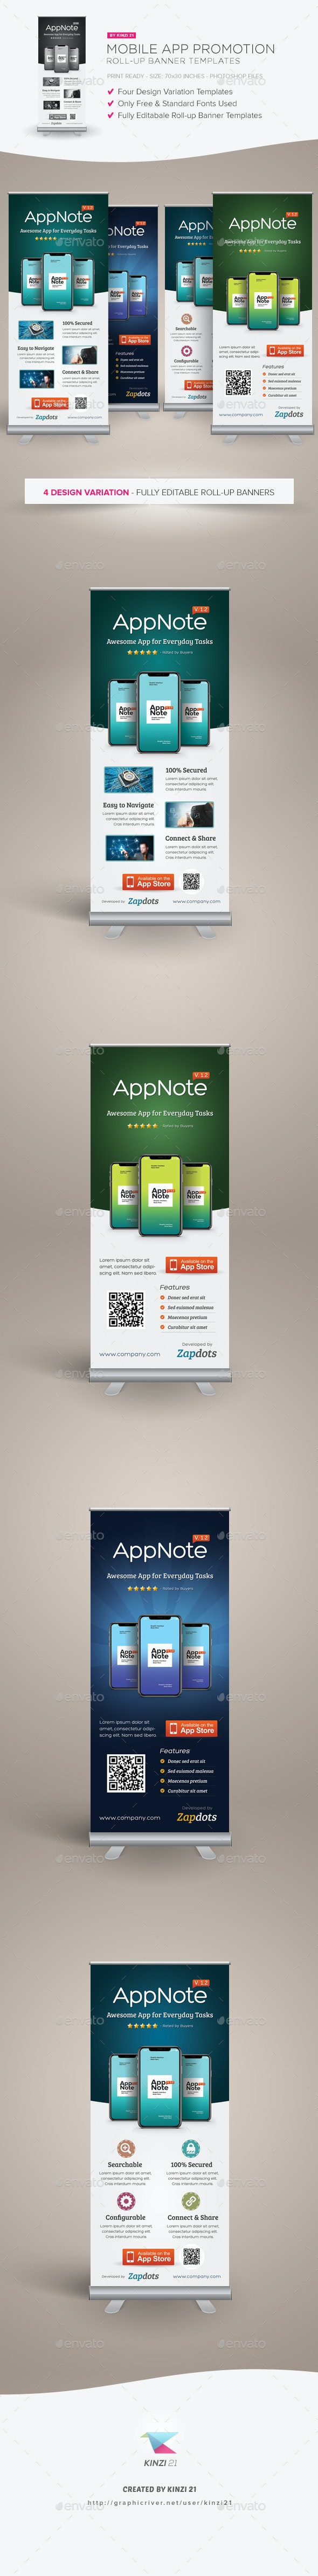 Mobile App Promotion Roll-up Banners - Signage Print Templates